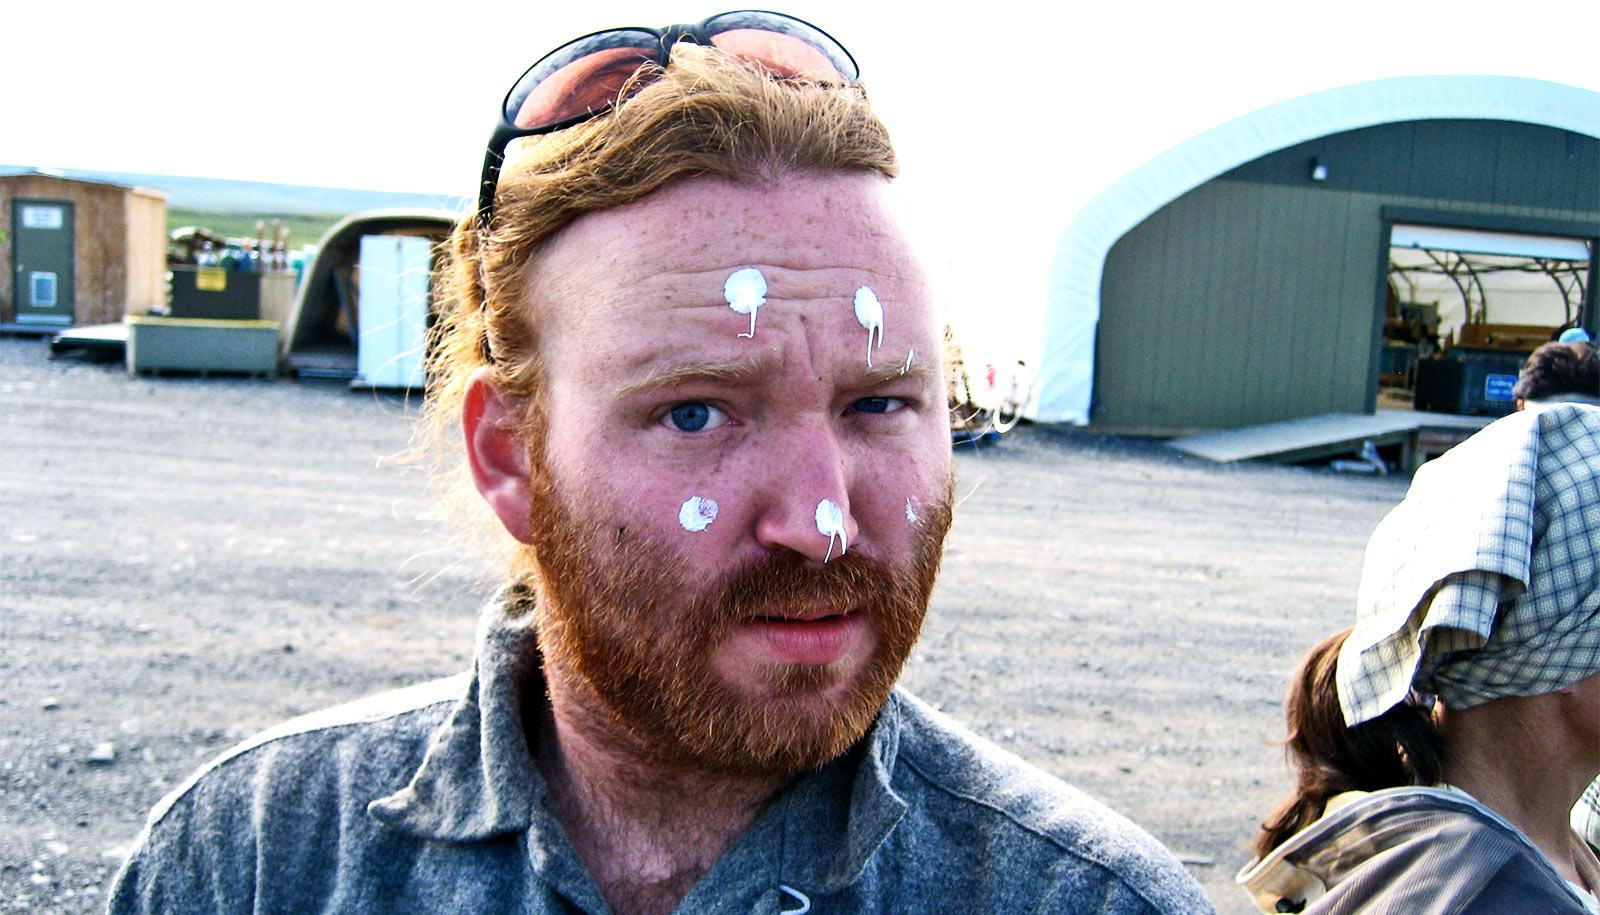 A red-haired, fair-skinned man has dots of white sunscreen on his sunburned face